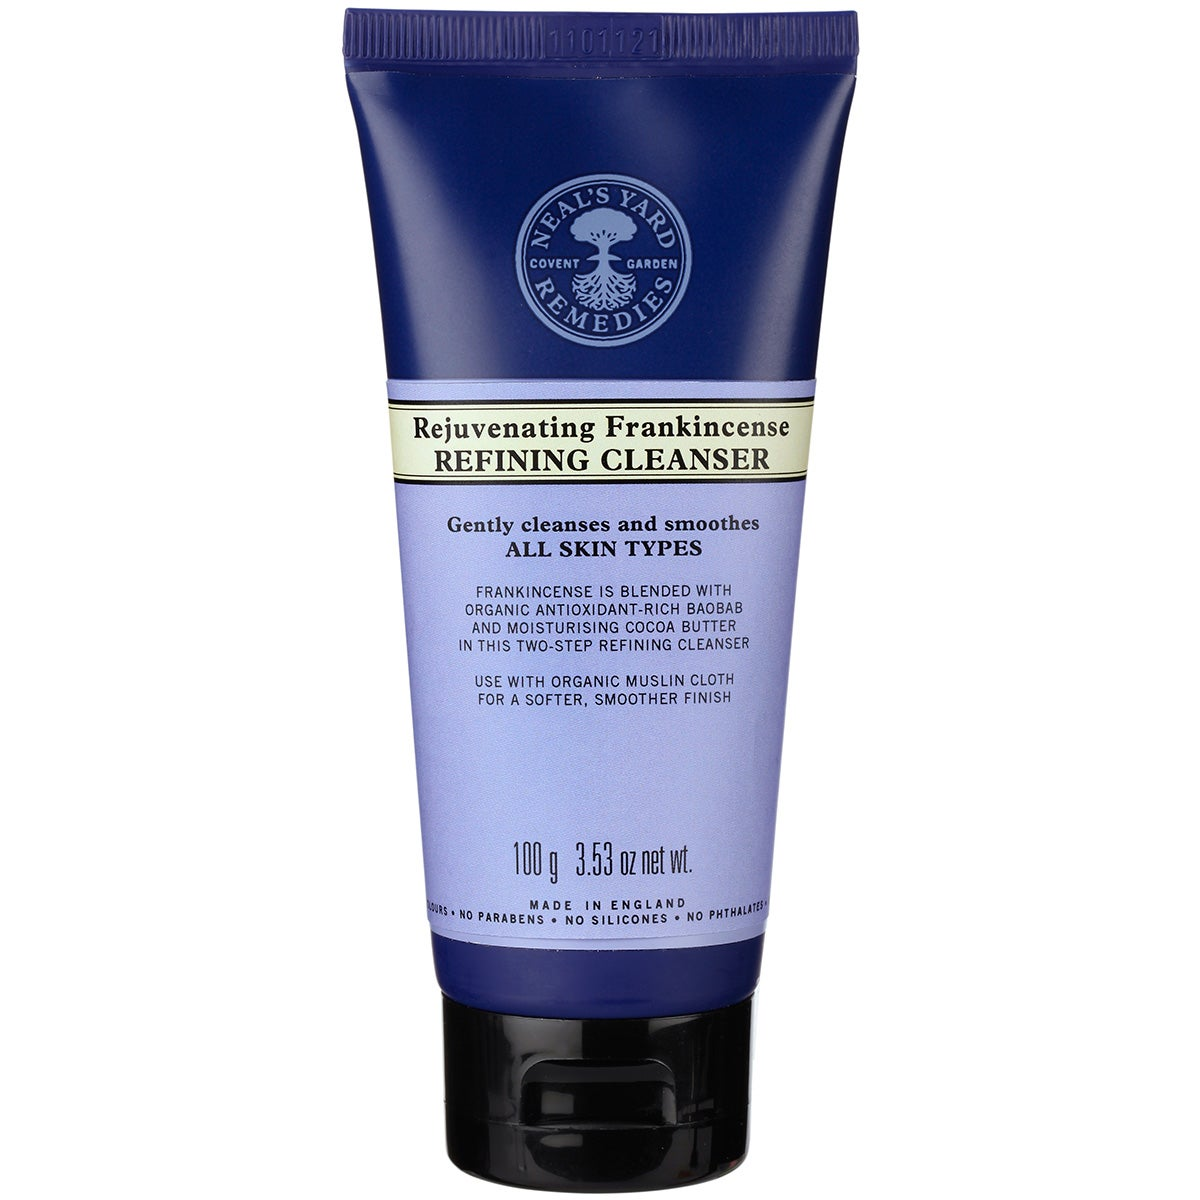 Neal's Yard Remedies Rejuvenating Frankicense Refining Cleanser